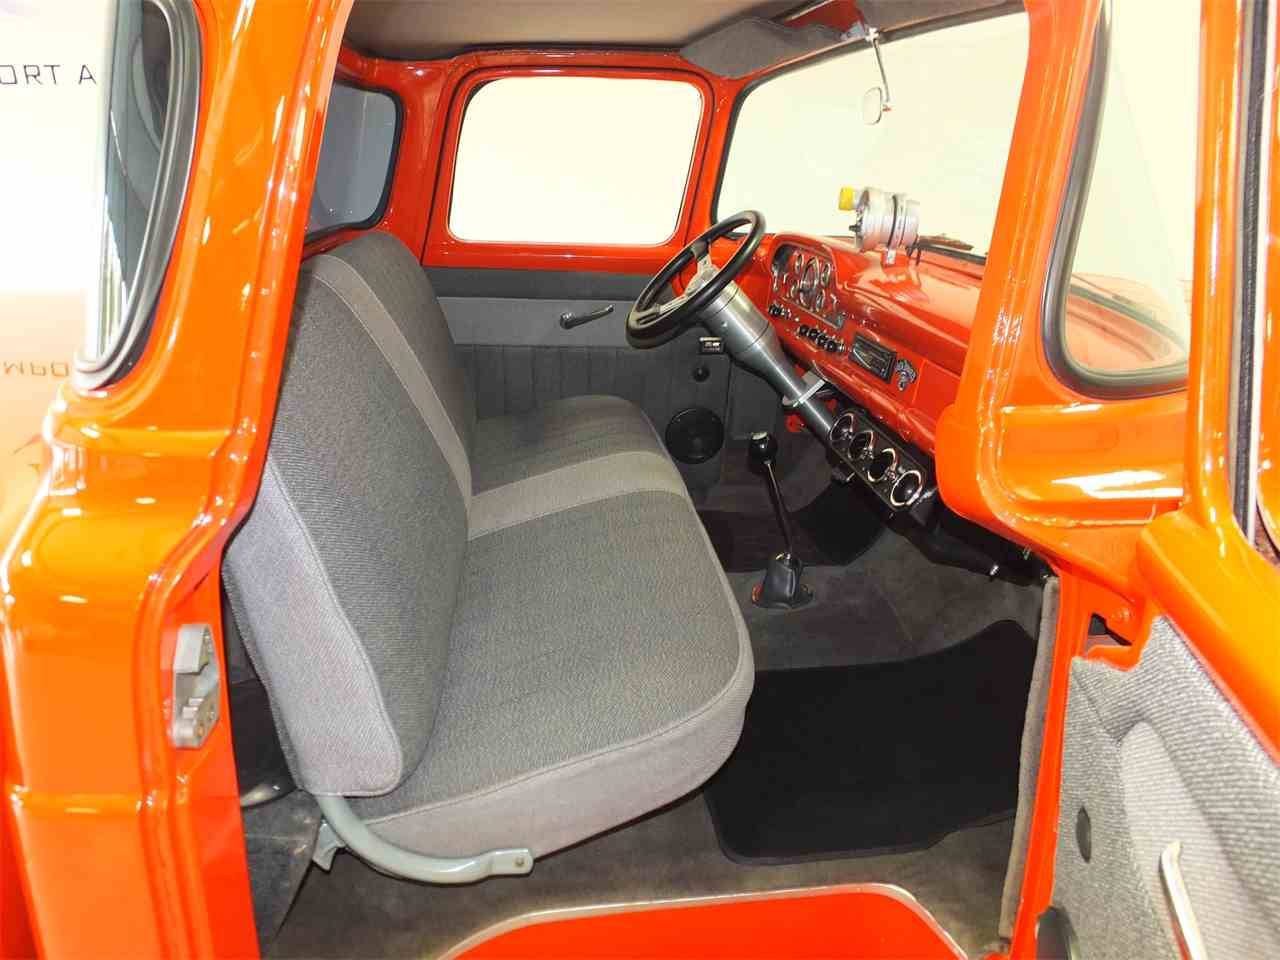 Large Picture of '60 Ford F100 located in Williamsburg Virginia - $22,980.00 Offered by a Private Seller - M780